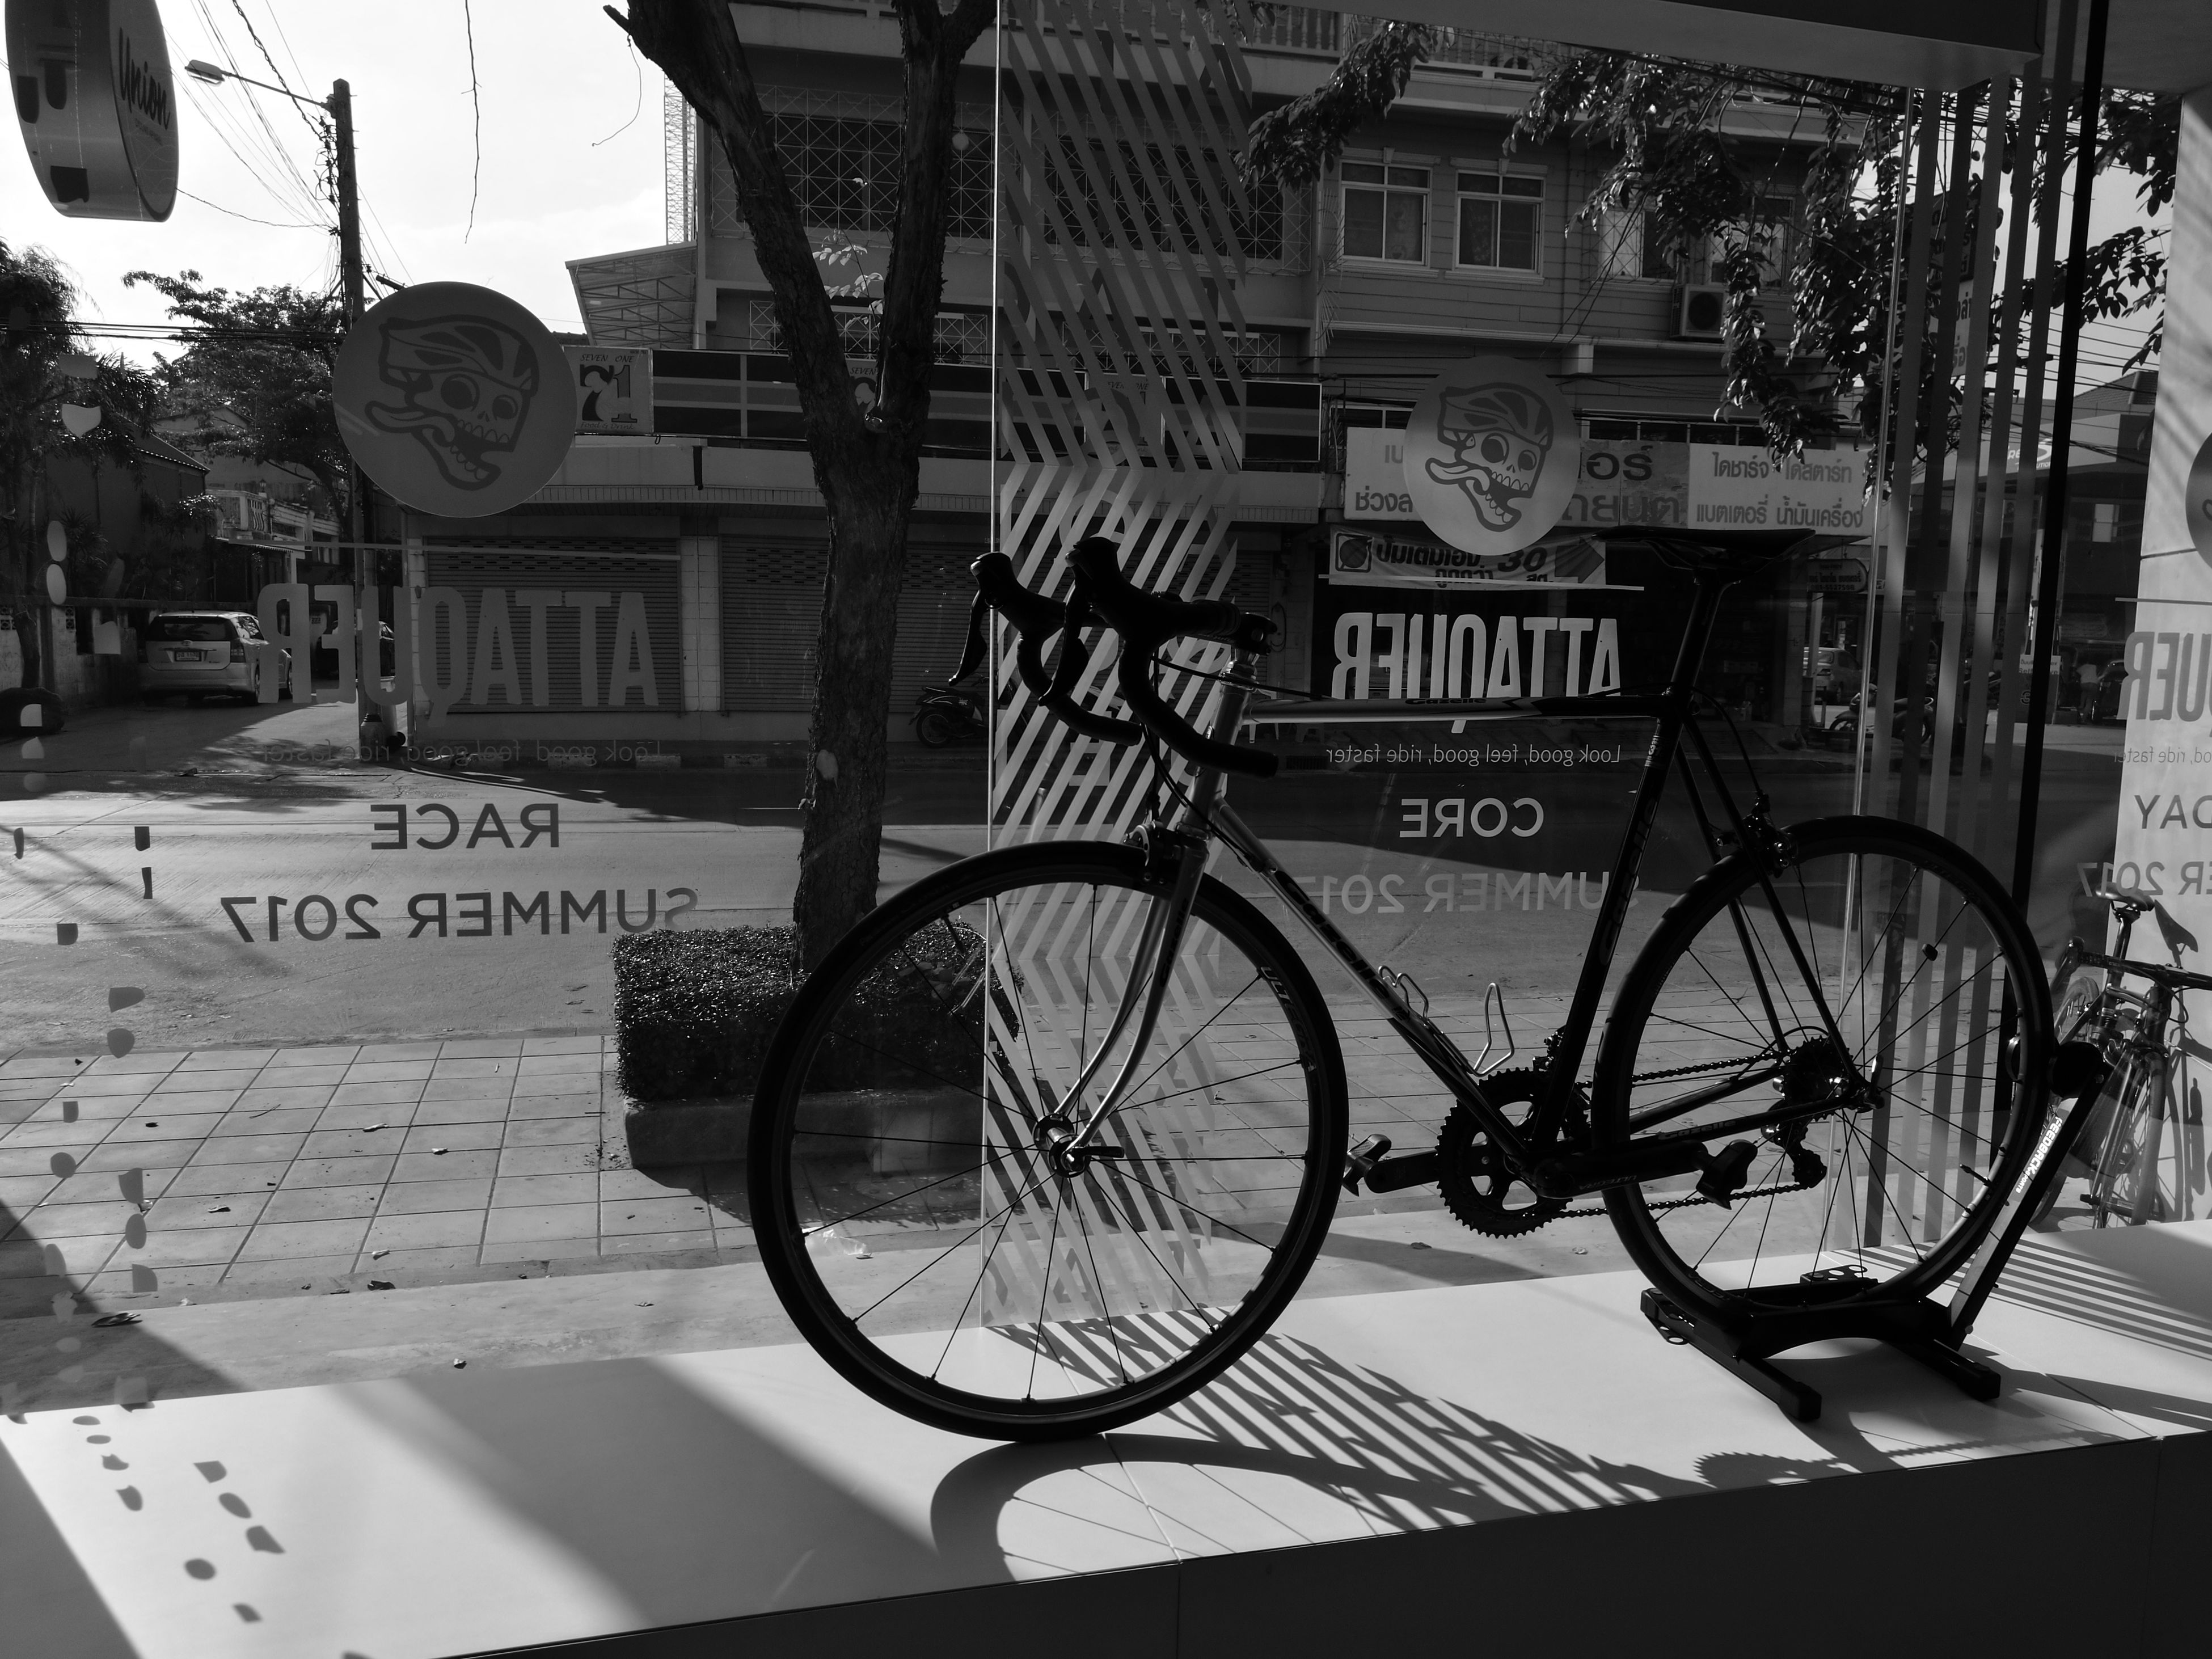 bicycle, transportation, city, mode of transport, built structure, building exterior, land vehicle, outdoors, architecture, no people, day, close-up